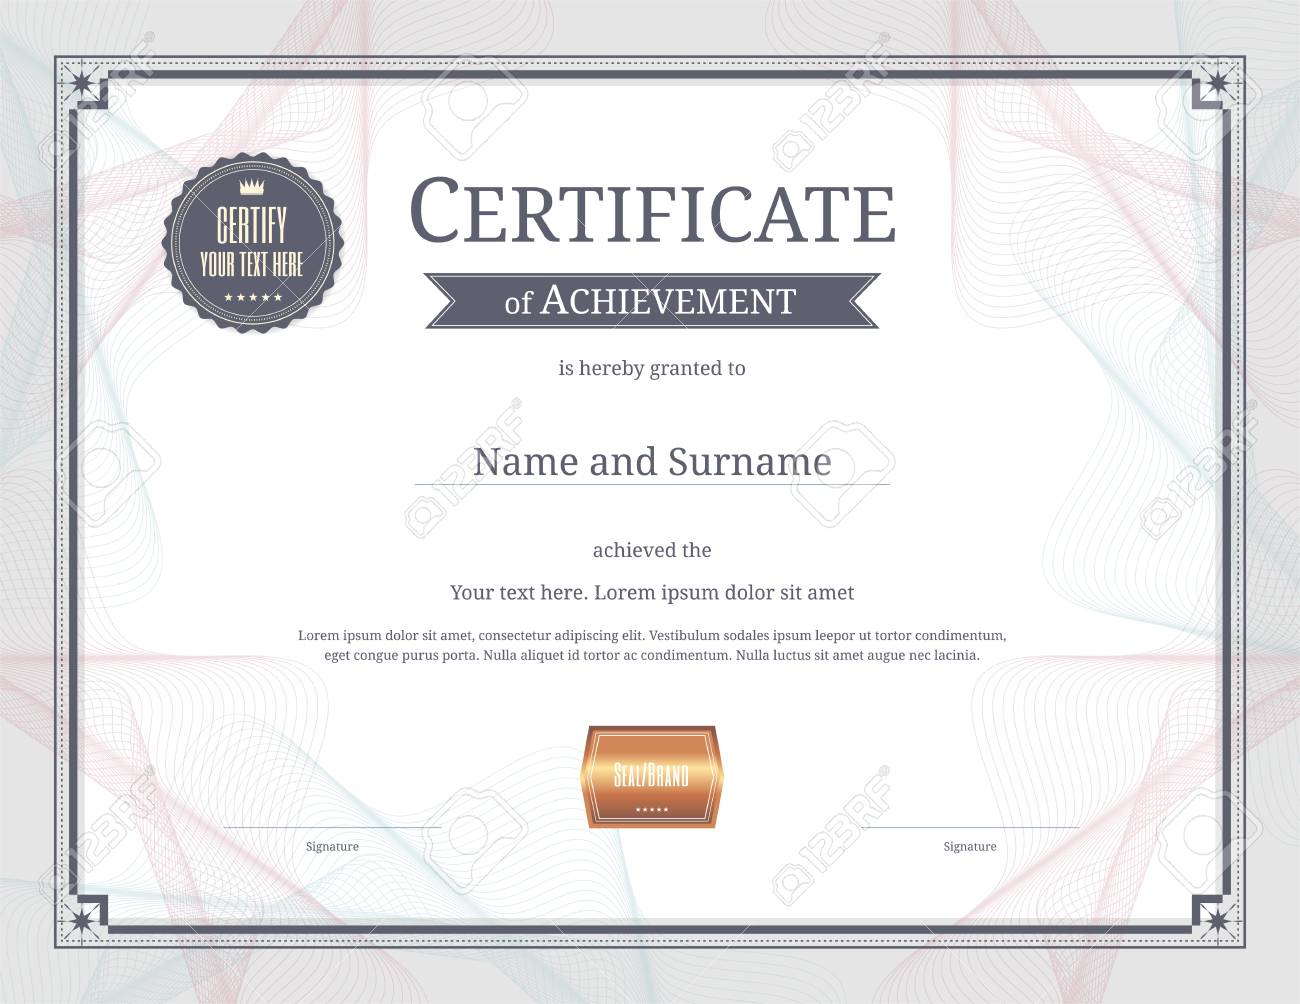 Luxury certificate template with elegant border frame diploma luxury certificate template with elegant border frame diploma design for graduation or completion banque d yelopaper Image collections